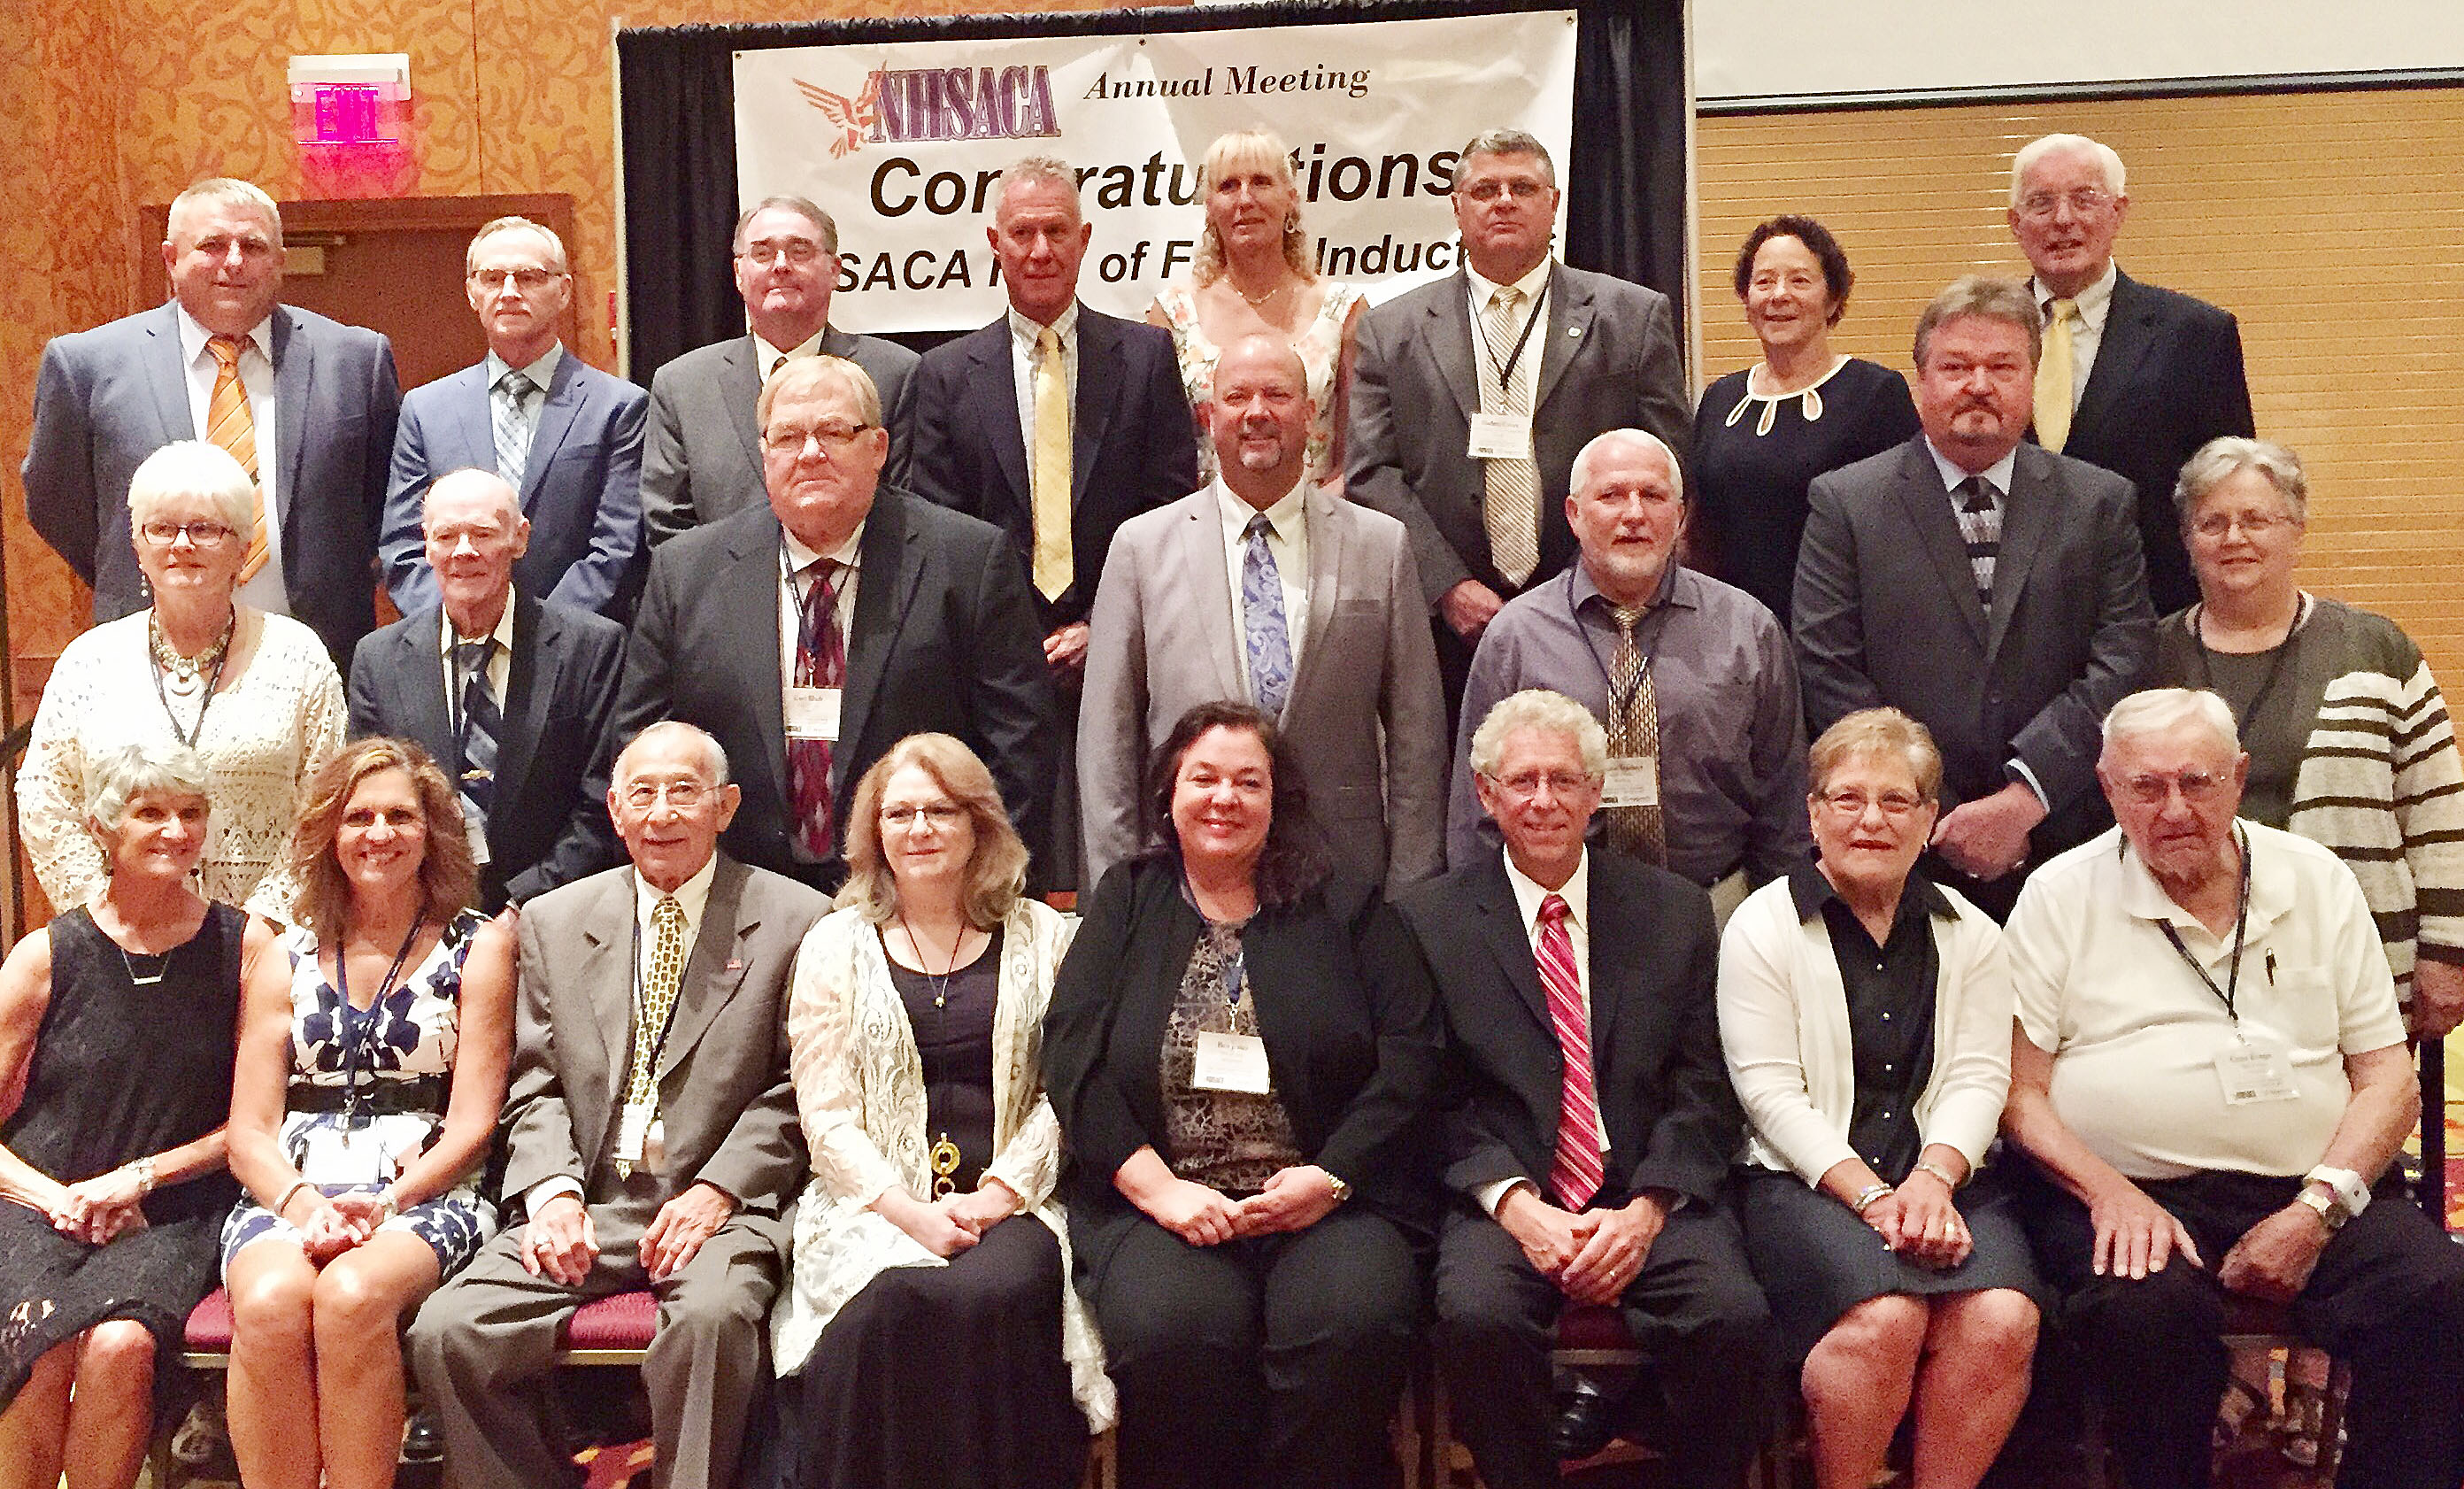 Campbellsville High School boys' head basketball coach and athletic director Tim Davis was inducted into the National High School Athletic Coaches Association Hall of Fame on Tuesday, June 20, for his longevity and service to high school athletics. Above, Davis poses for a photo with all the inductees. He is pictured in the second row, fourth from left.